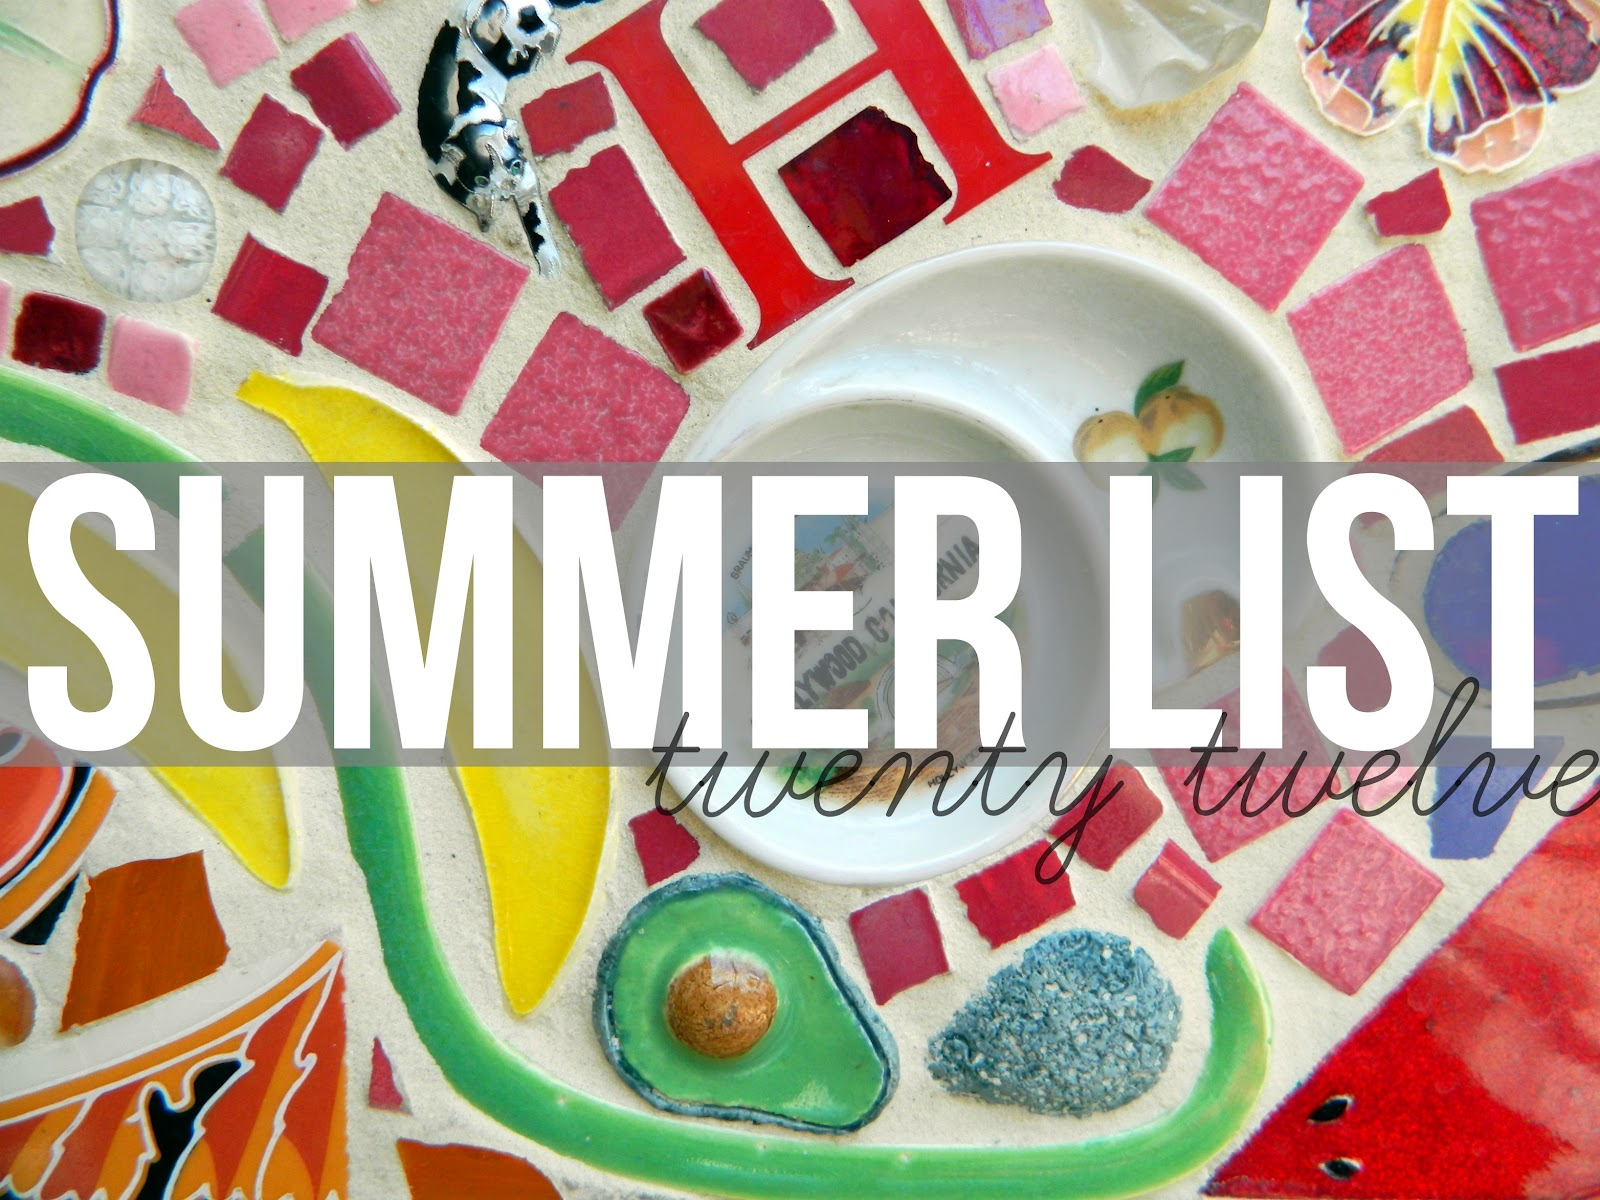 Summer List - Things I'd Like to do During Summer 2012 - Campfire Chic